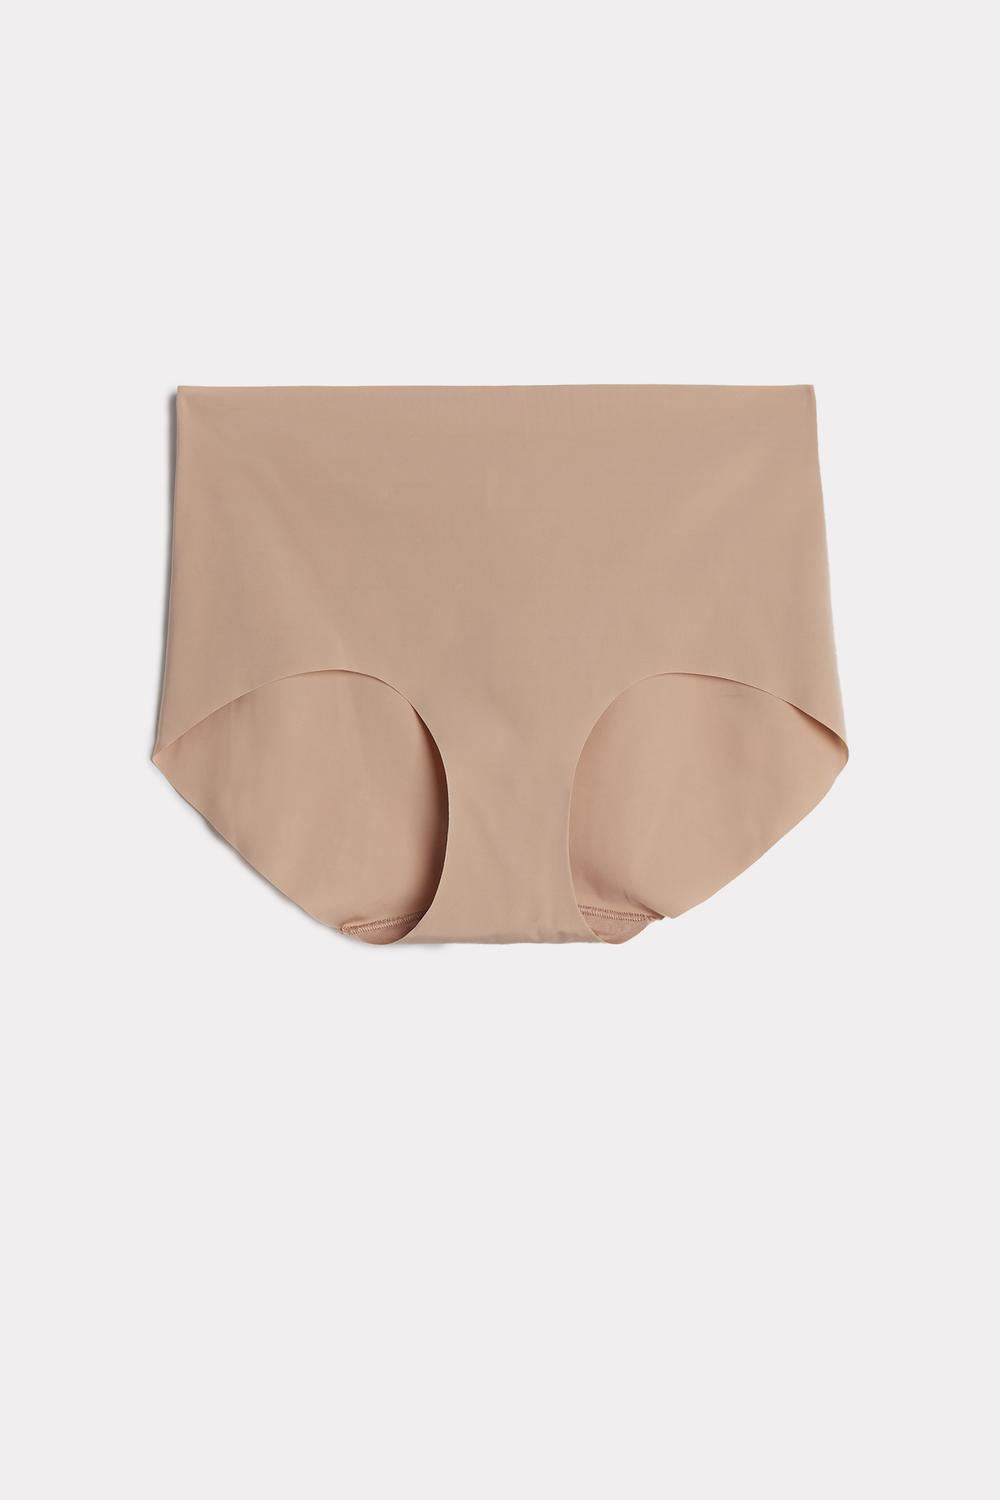 Laser Cut French Knickers